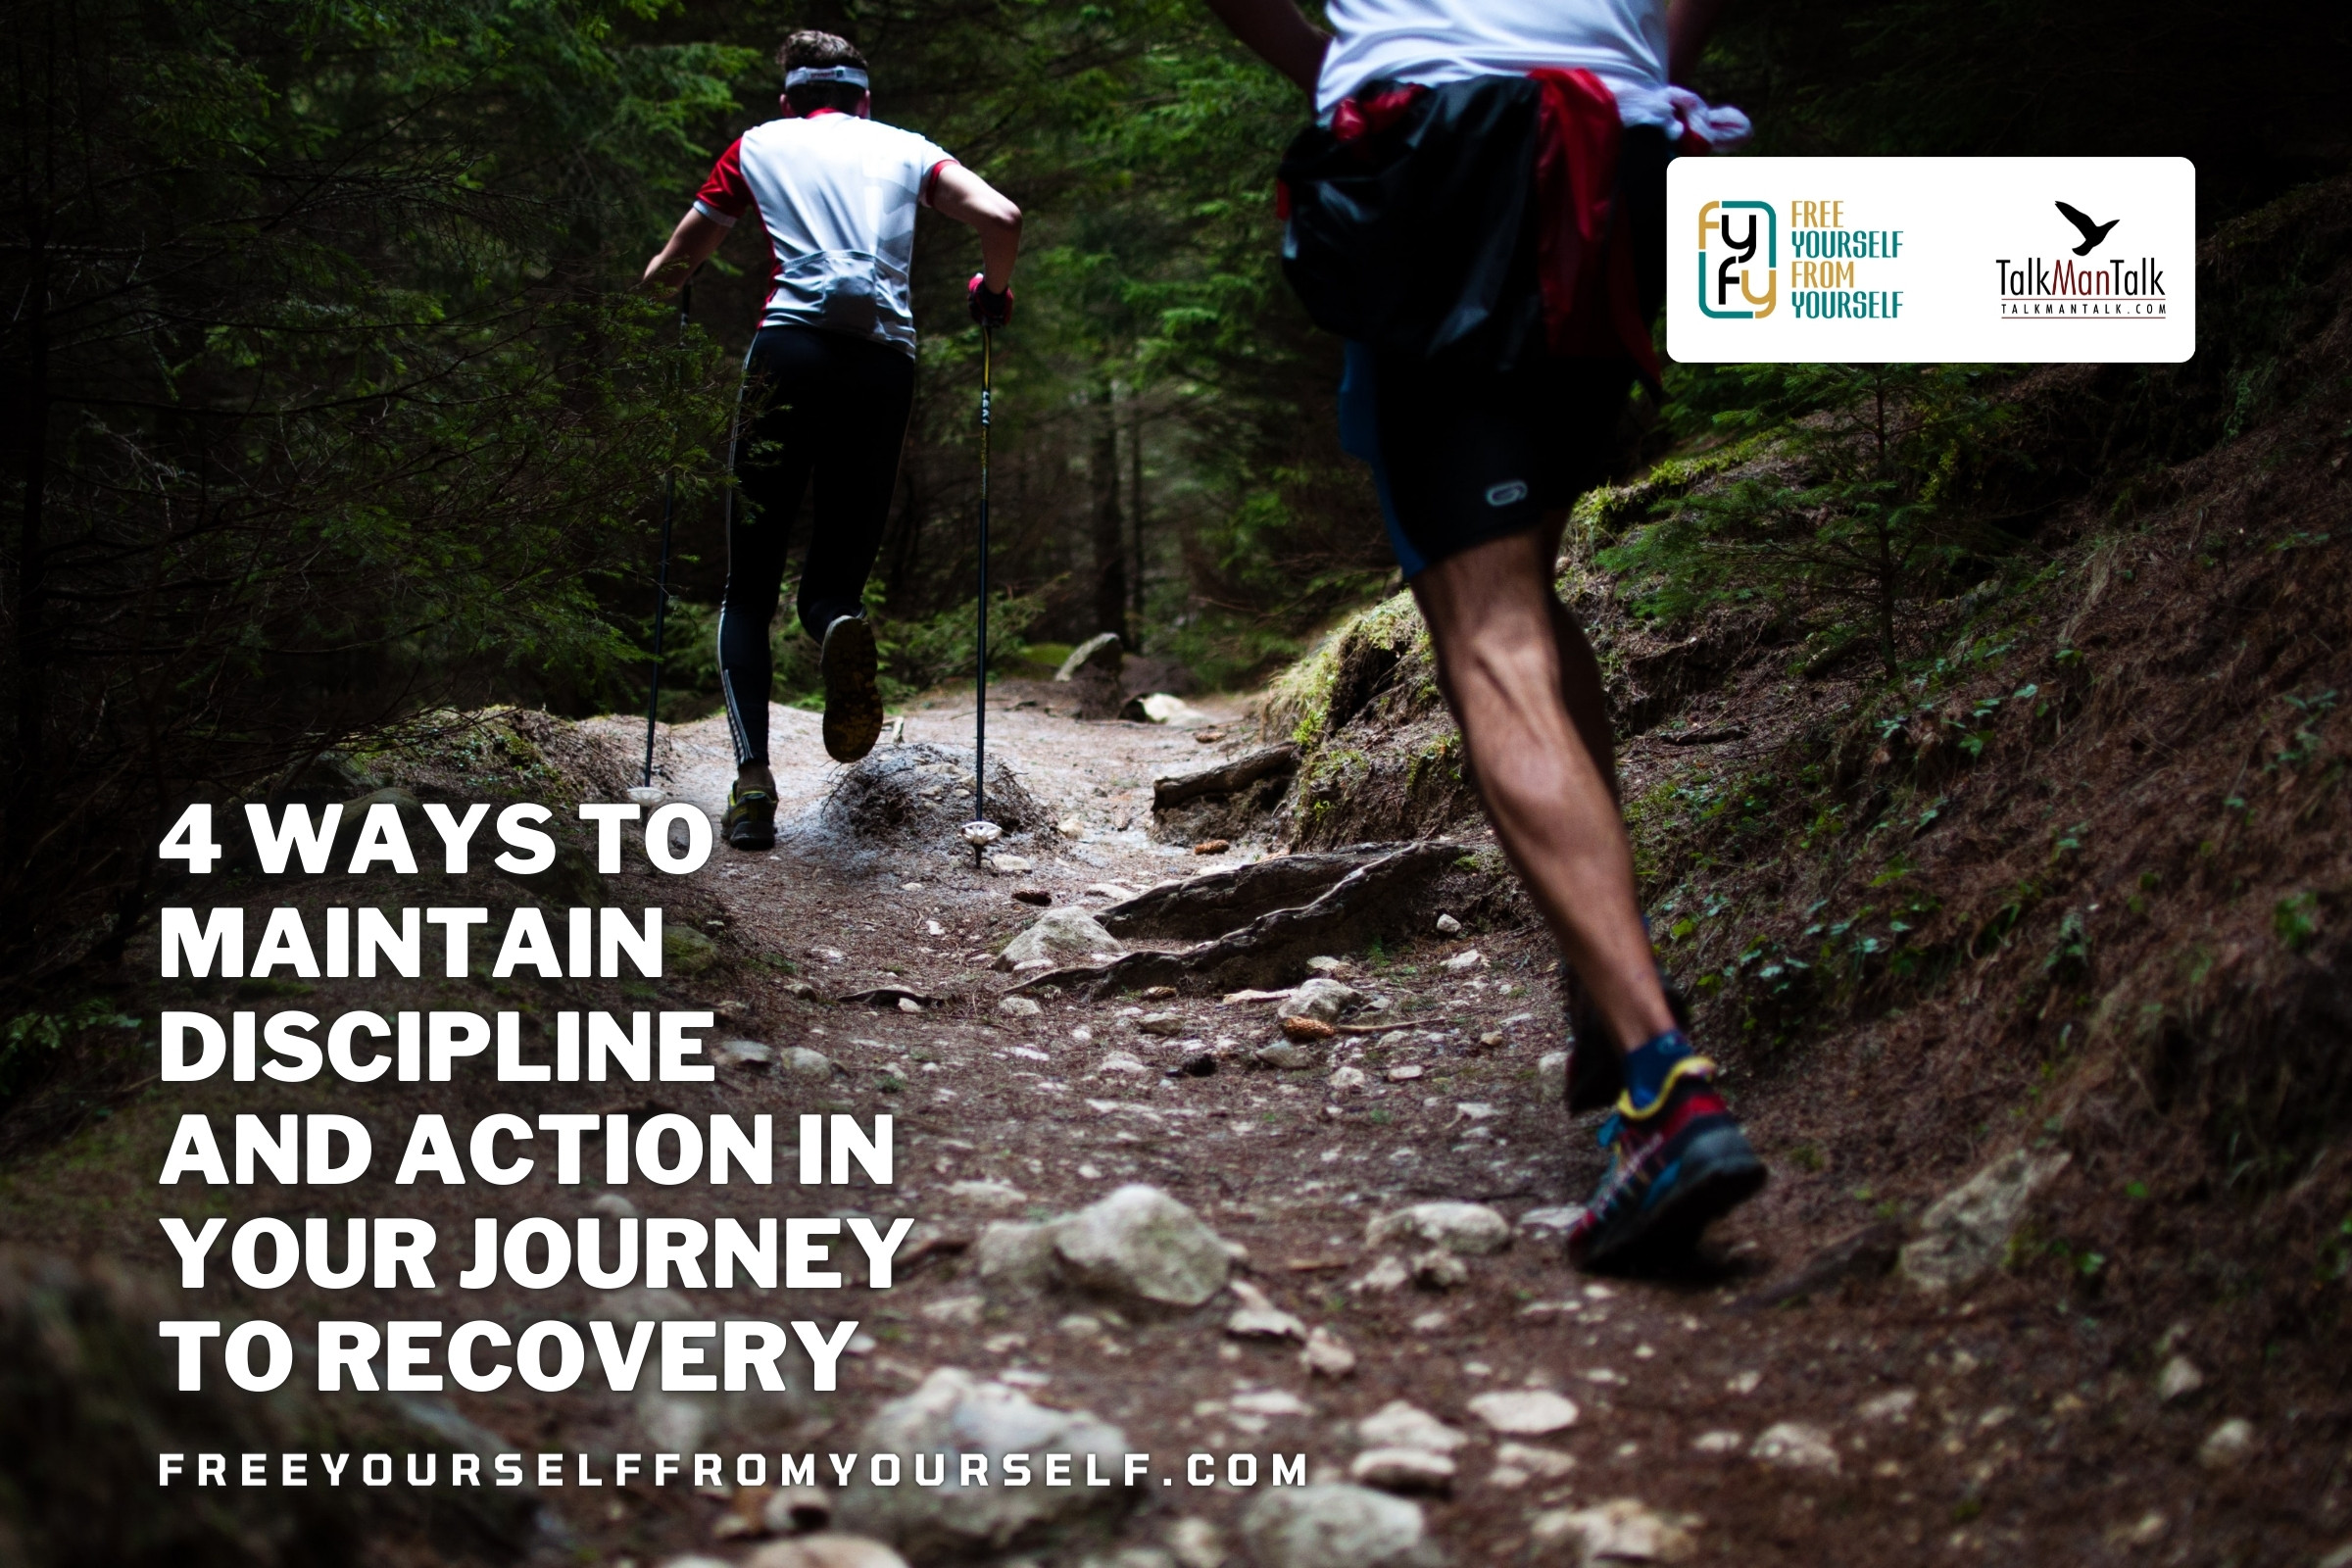 4 Ways To Maintain Discipline and Action In Your Journey to Recovery